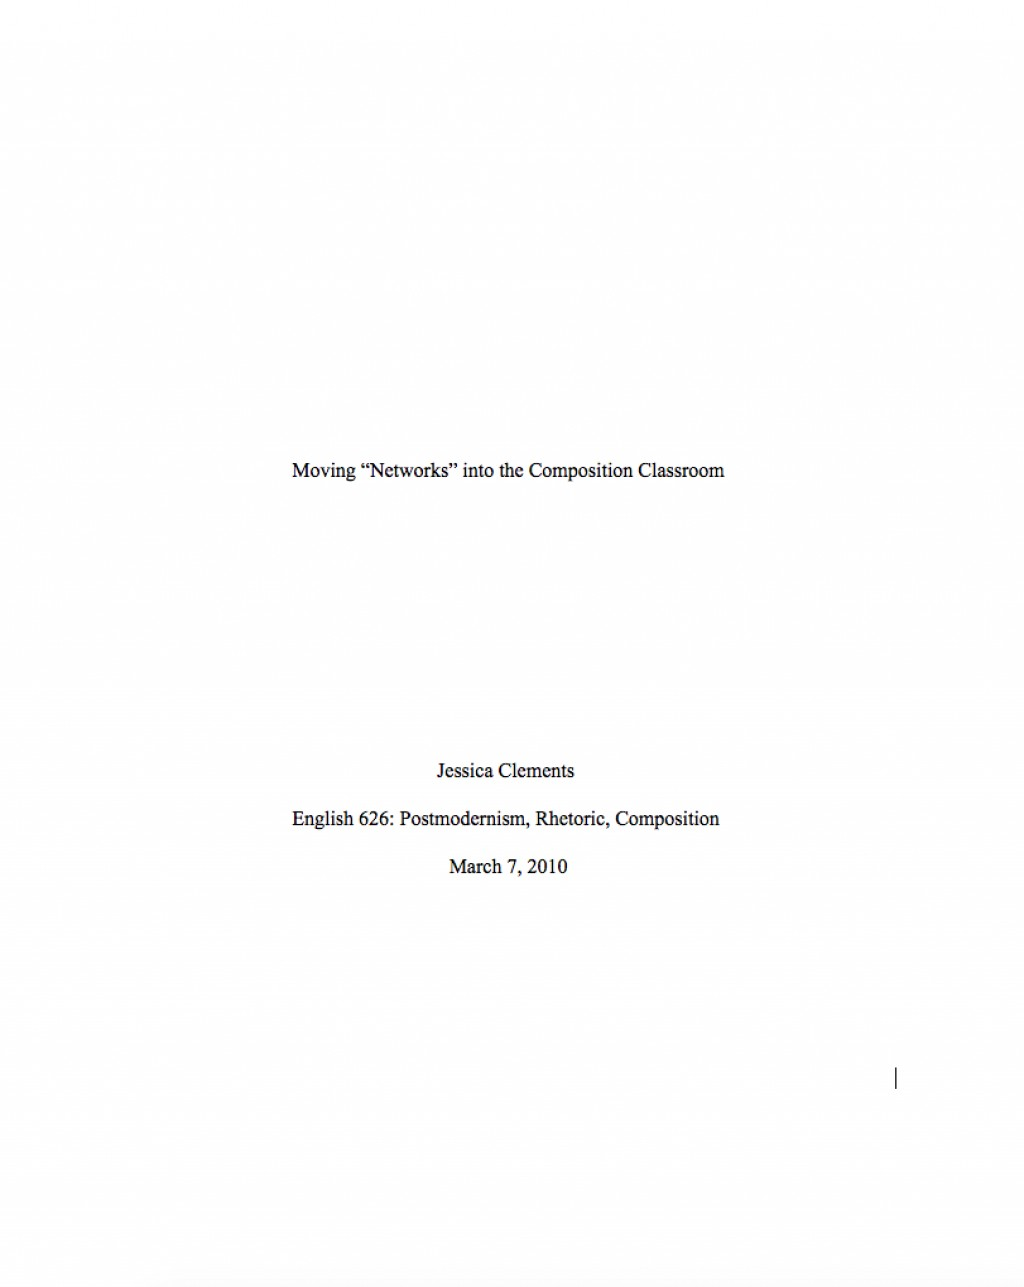 019 20180216121200 717 02 Research Paper Mla Format Cover Page Unique Example Title Large